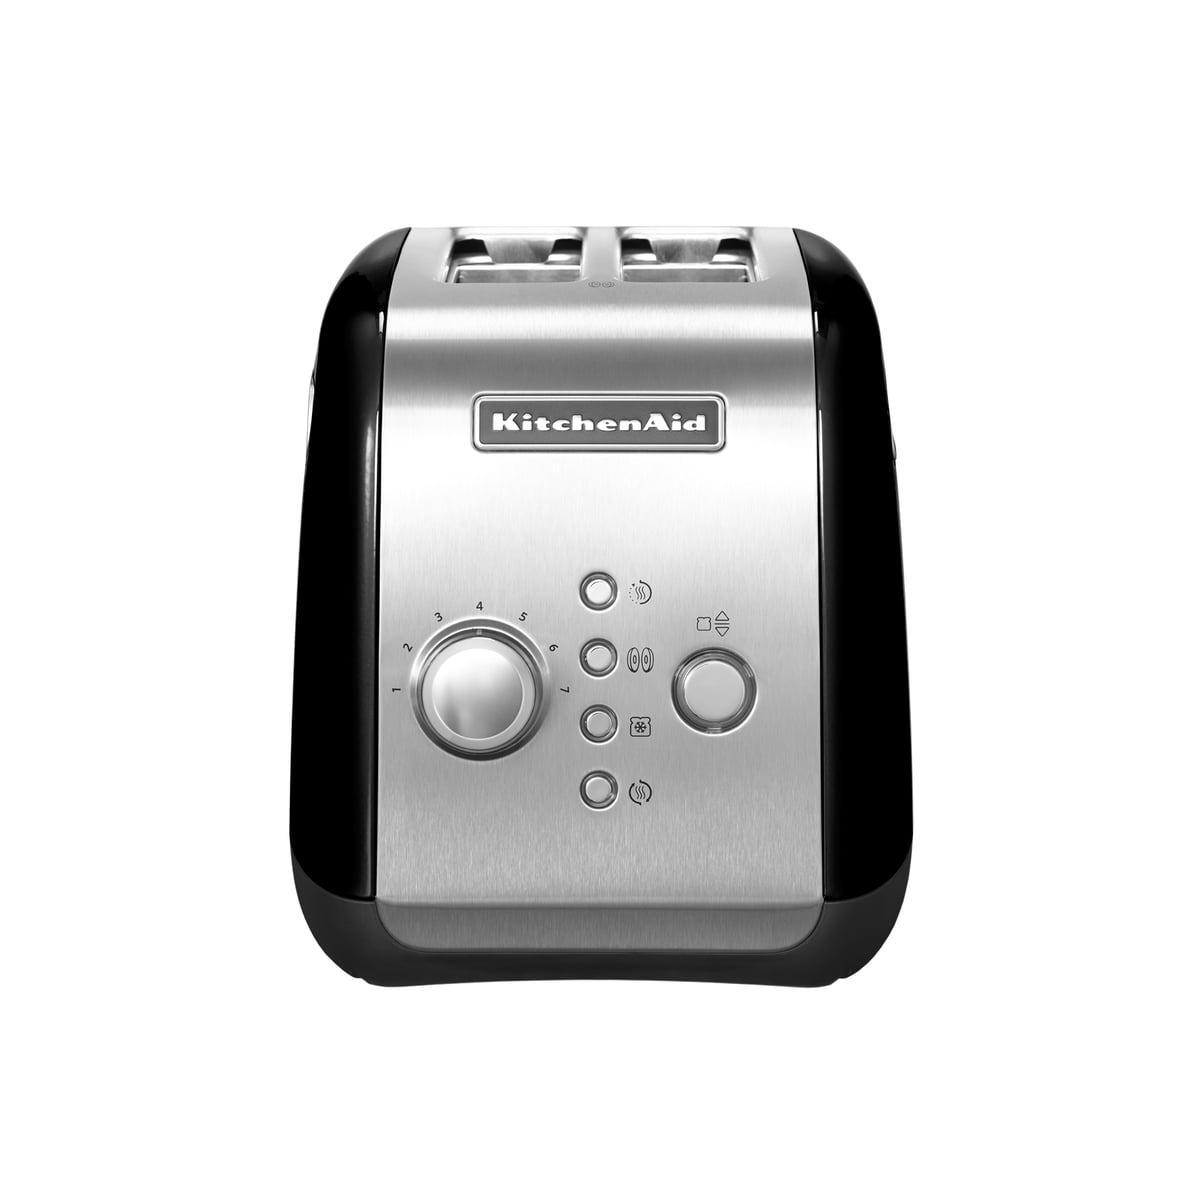 Black Kitchenaid Toaster: 2-Slices Toaster By KitchenAid In The Shop